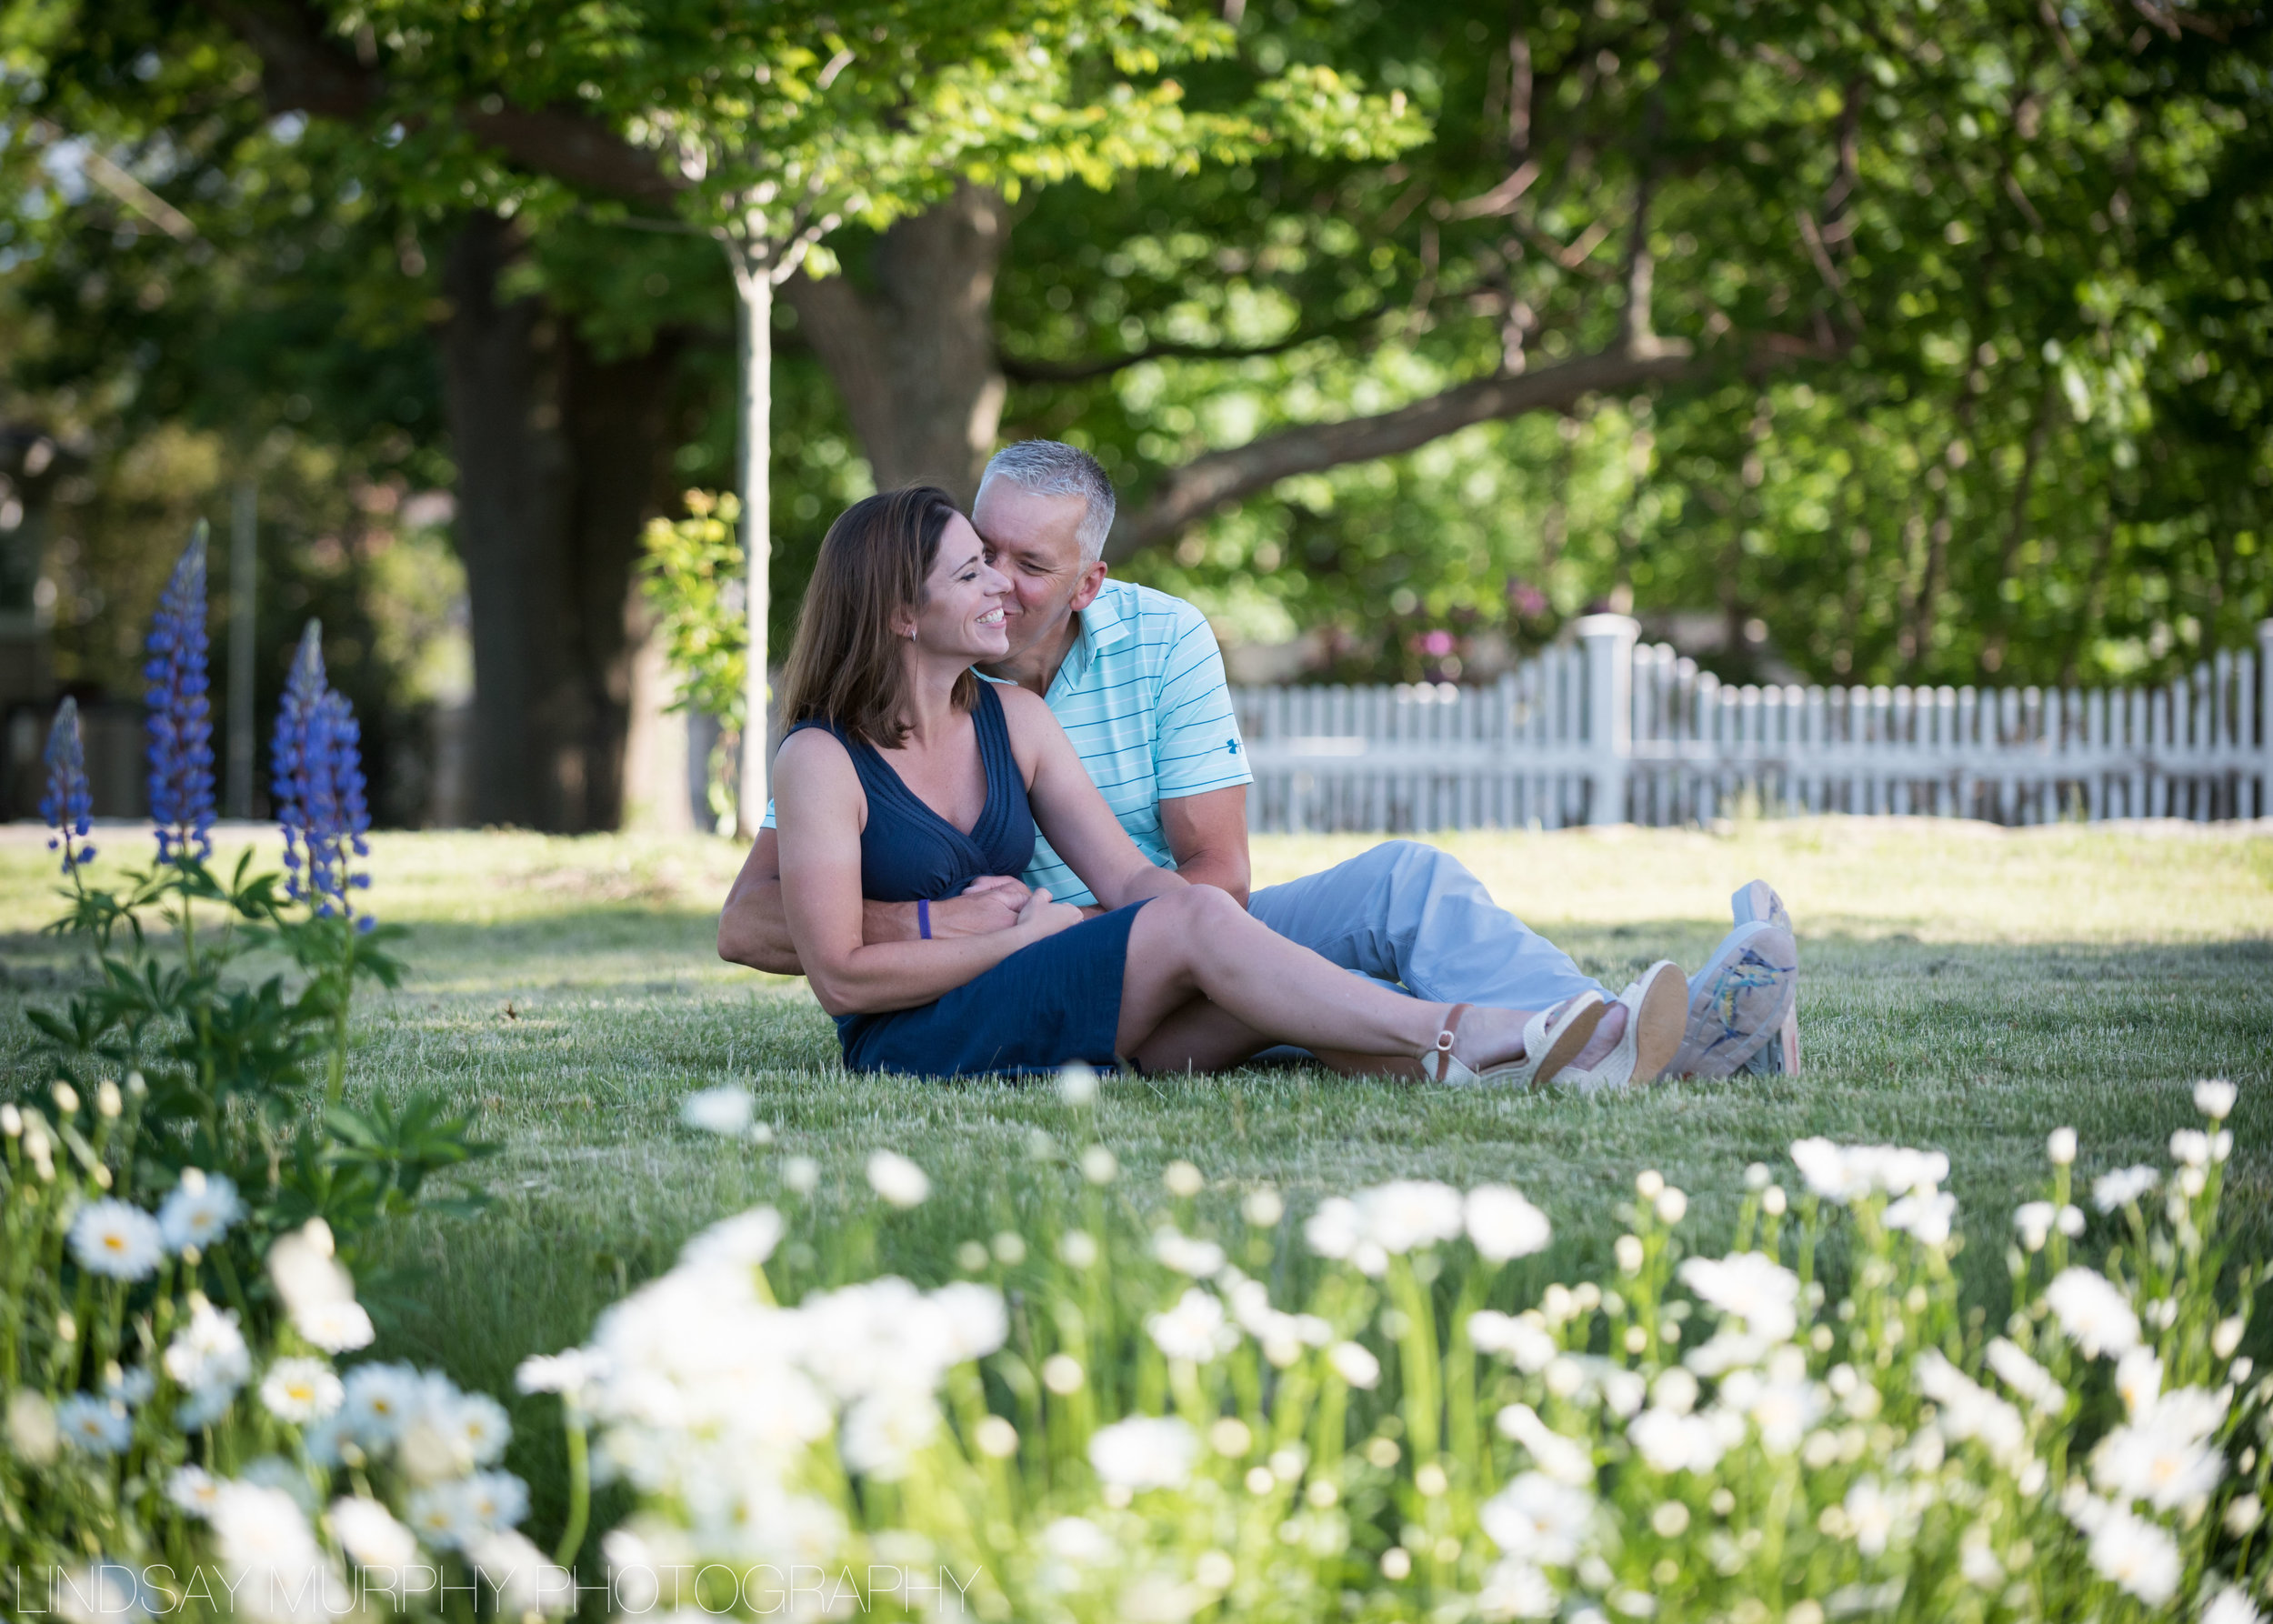 Duxbury_Engagement_Photographer-17.jpg